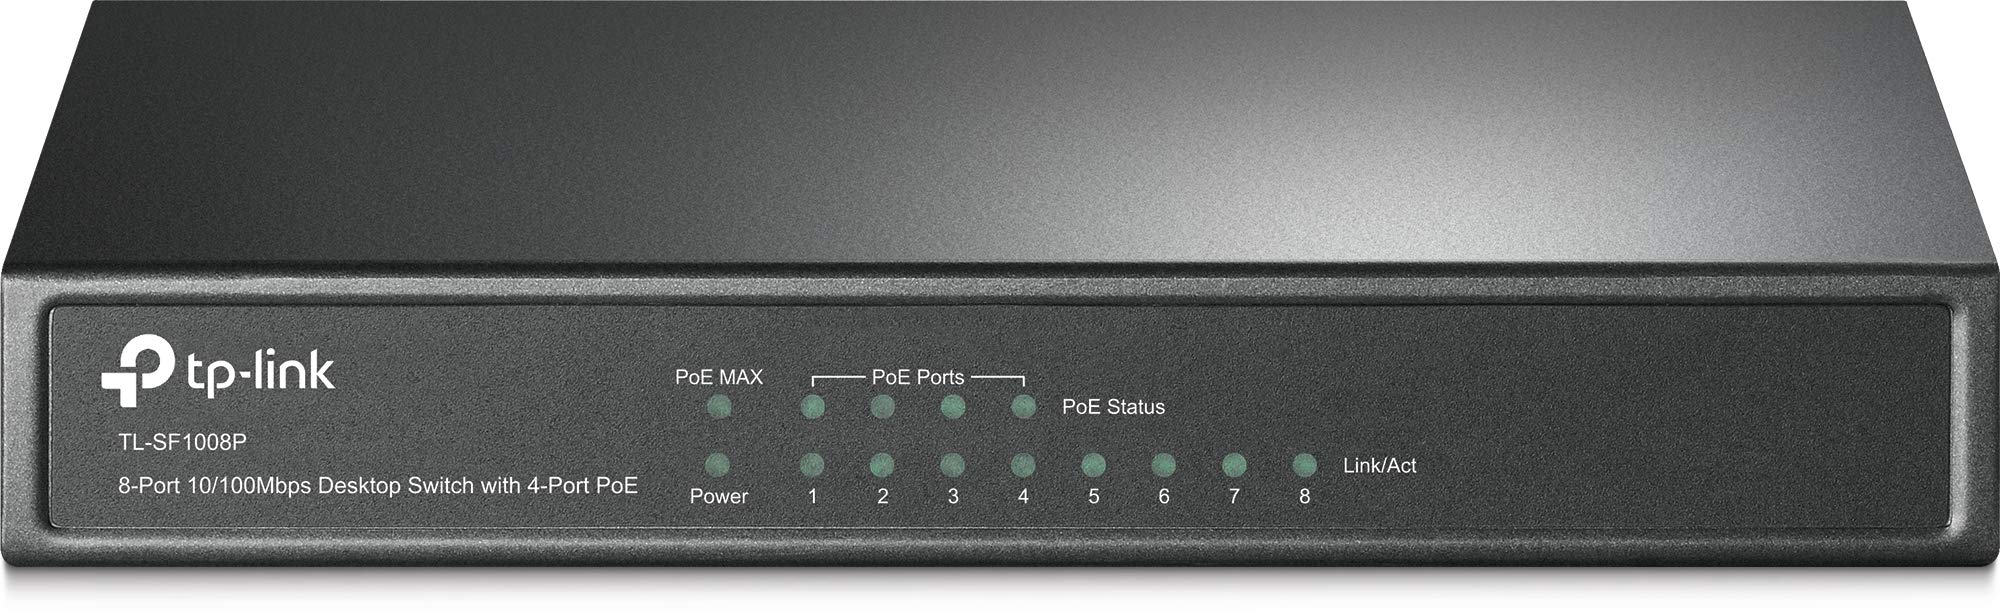 TP-Link 8-Port Fast Ethernet Unmanaged PoE Switch with 57W 4-PoE Ports | 802.3af | Plug and Play | Desktop| Metal | Limited Lifetime (TL-SF1008P) by TP-LINK